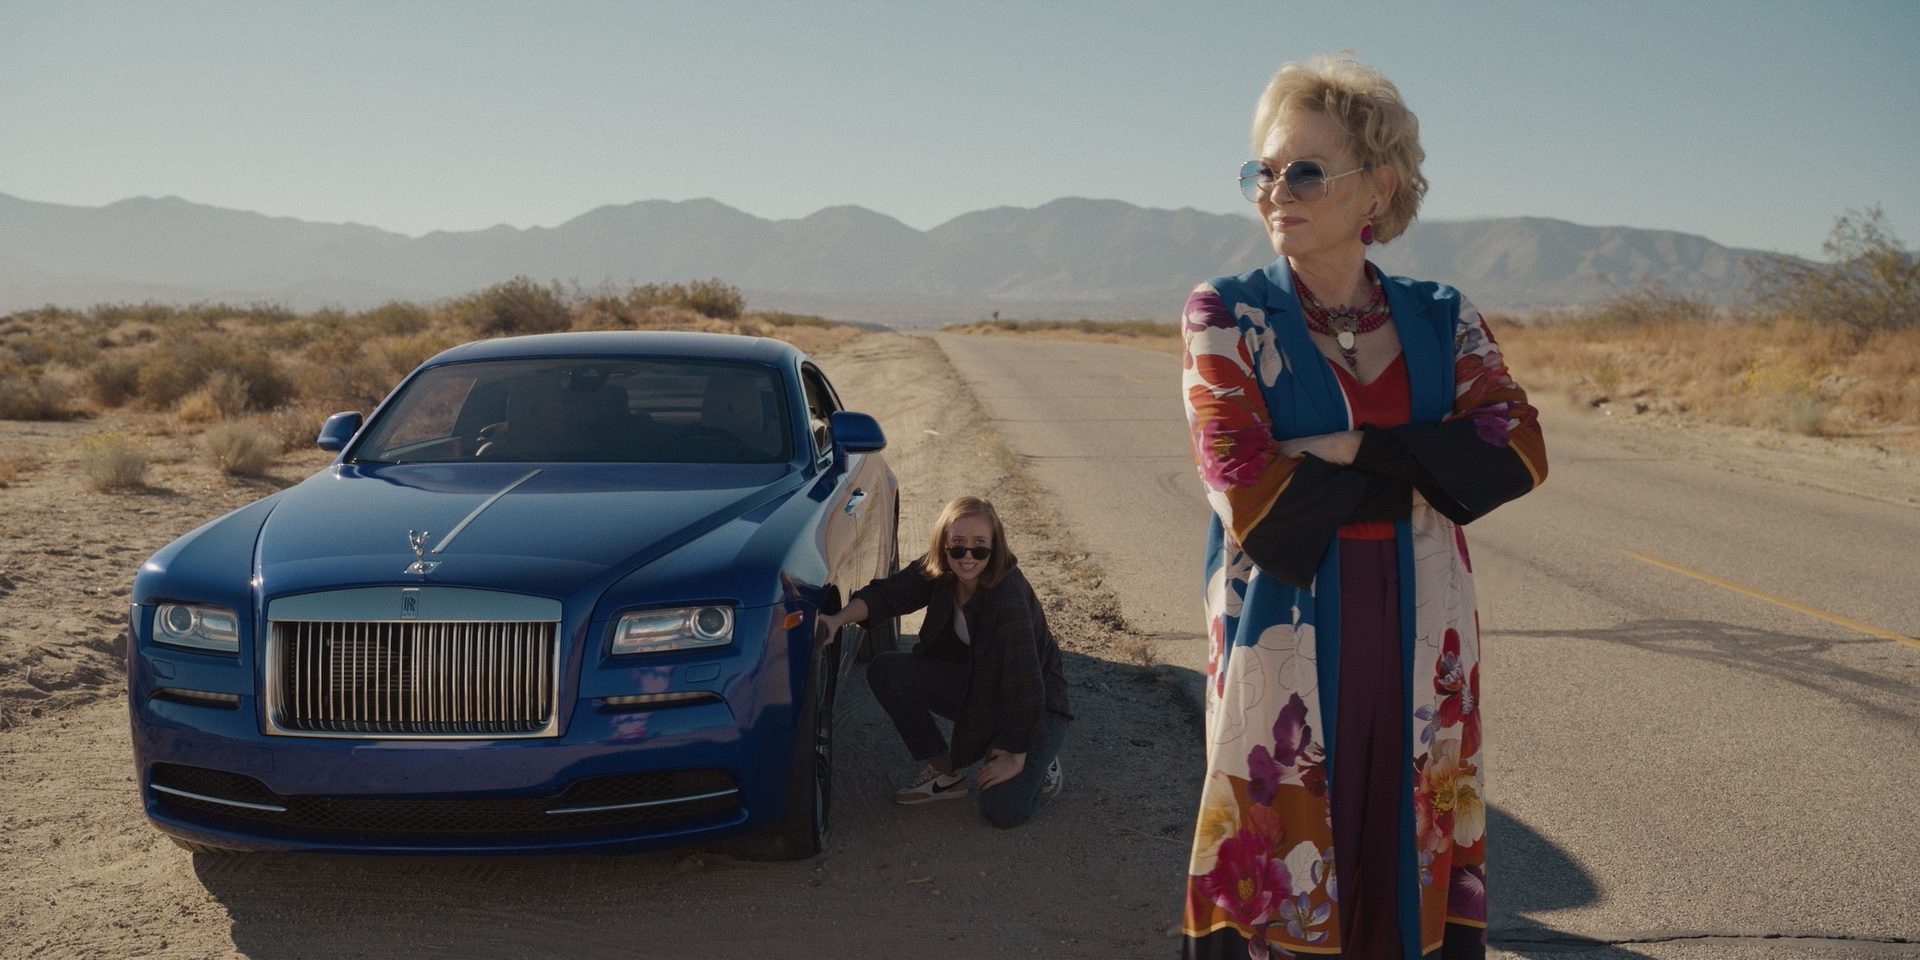 Deborah and Ava in the middle of the desert beside a car in the new series Hacks.